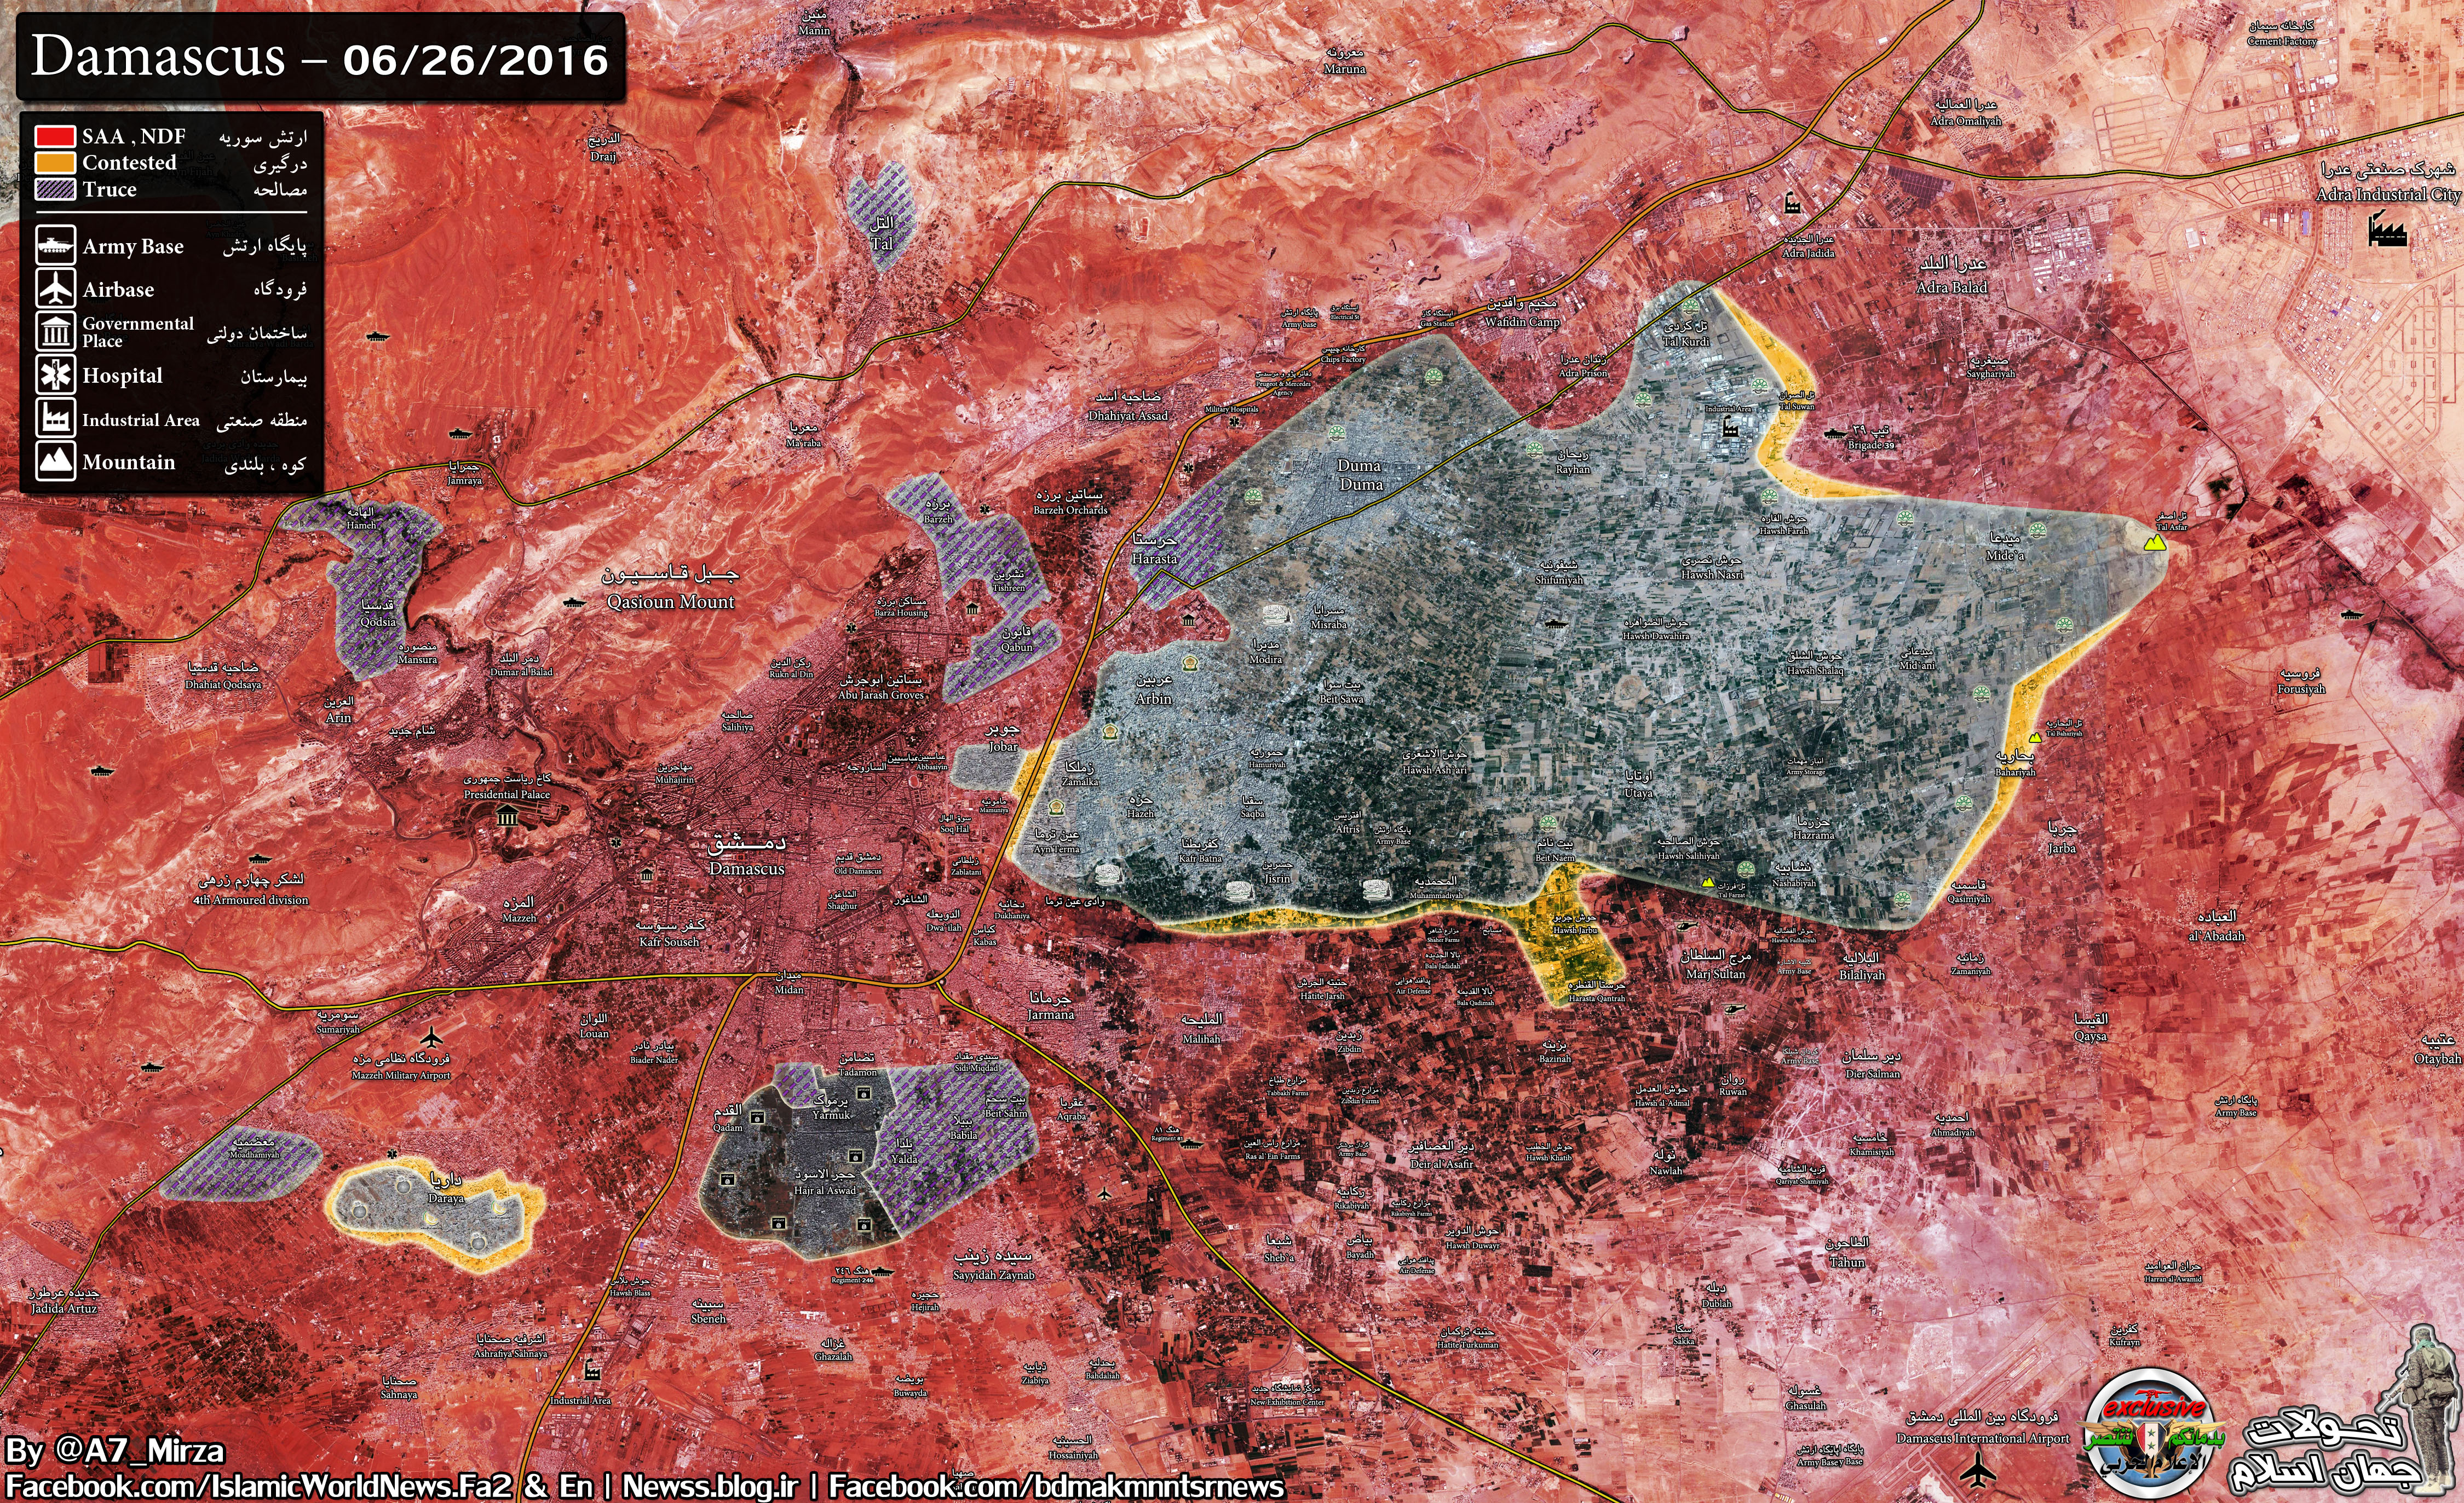 Military Situation in Syria's Damascus on June 26